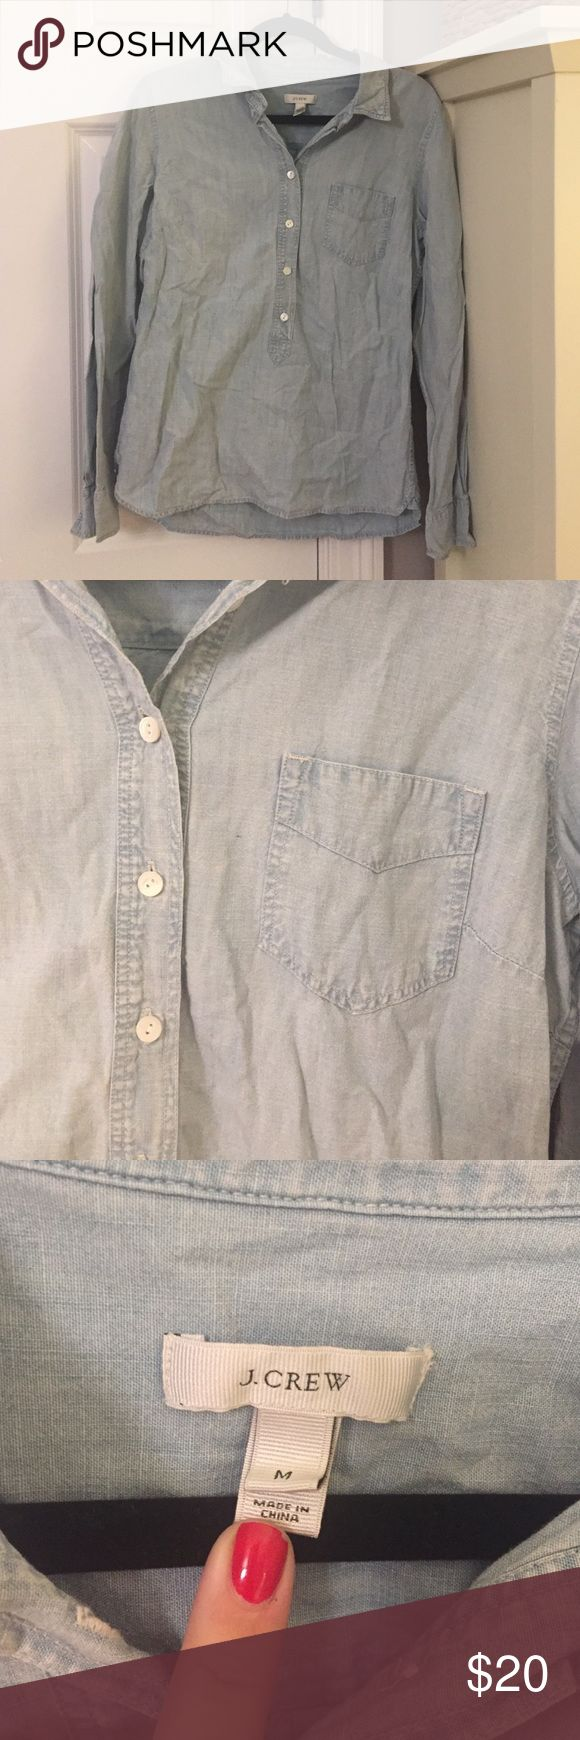 JCrew pop over chambray shirt Great condition in this adorable chambray shirt from jcrew! J. Crew Tops Button Down Shirts